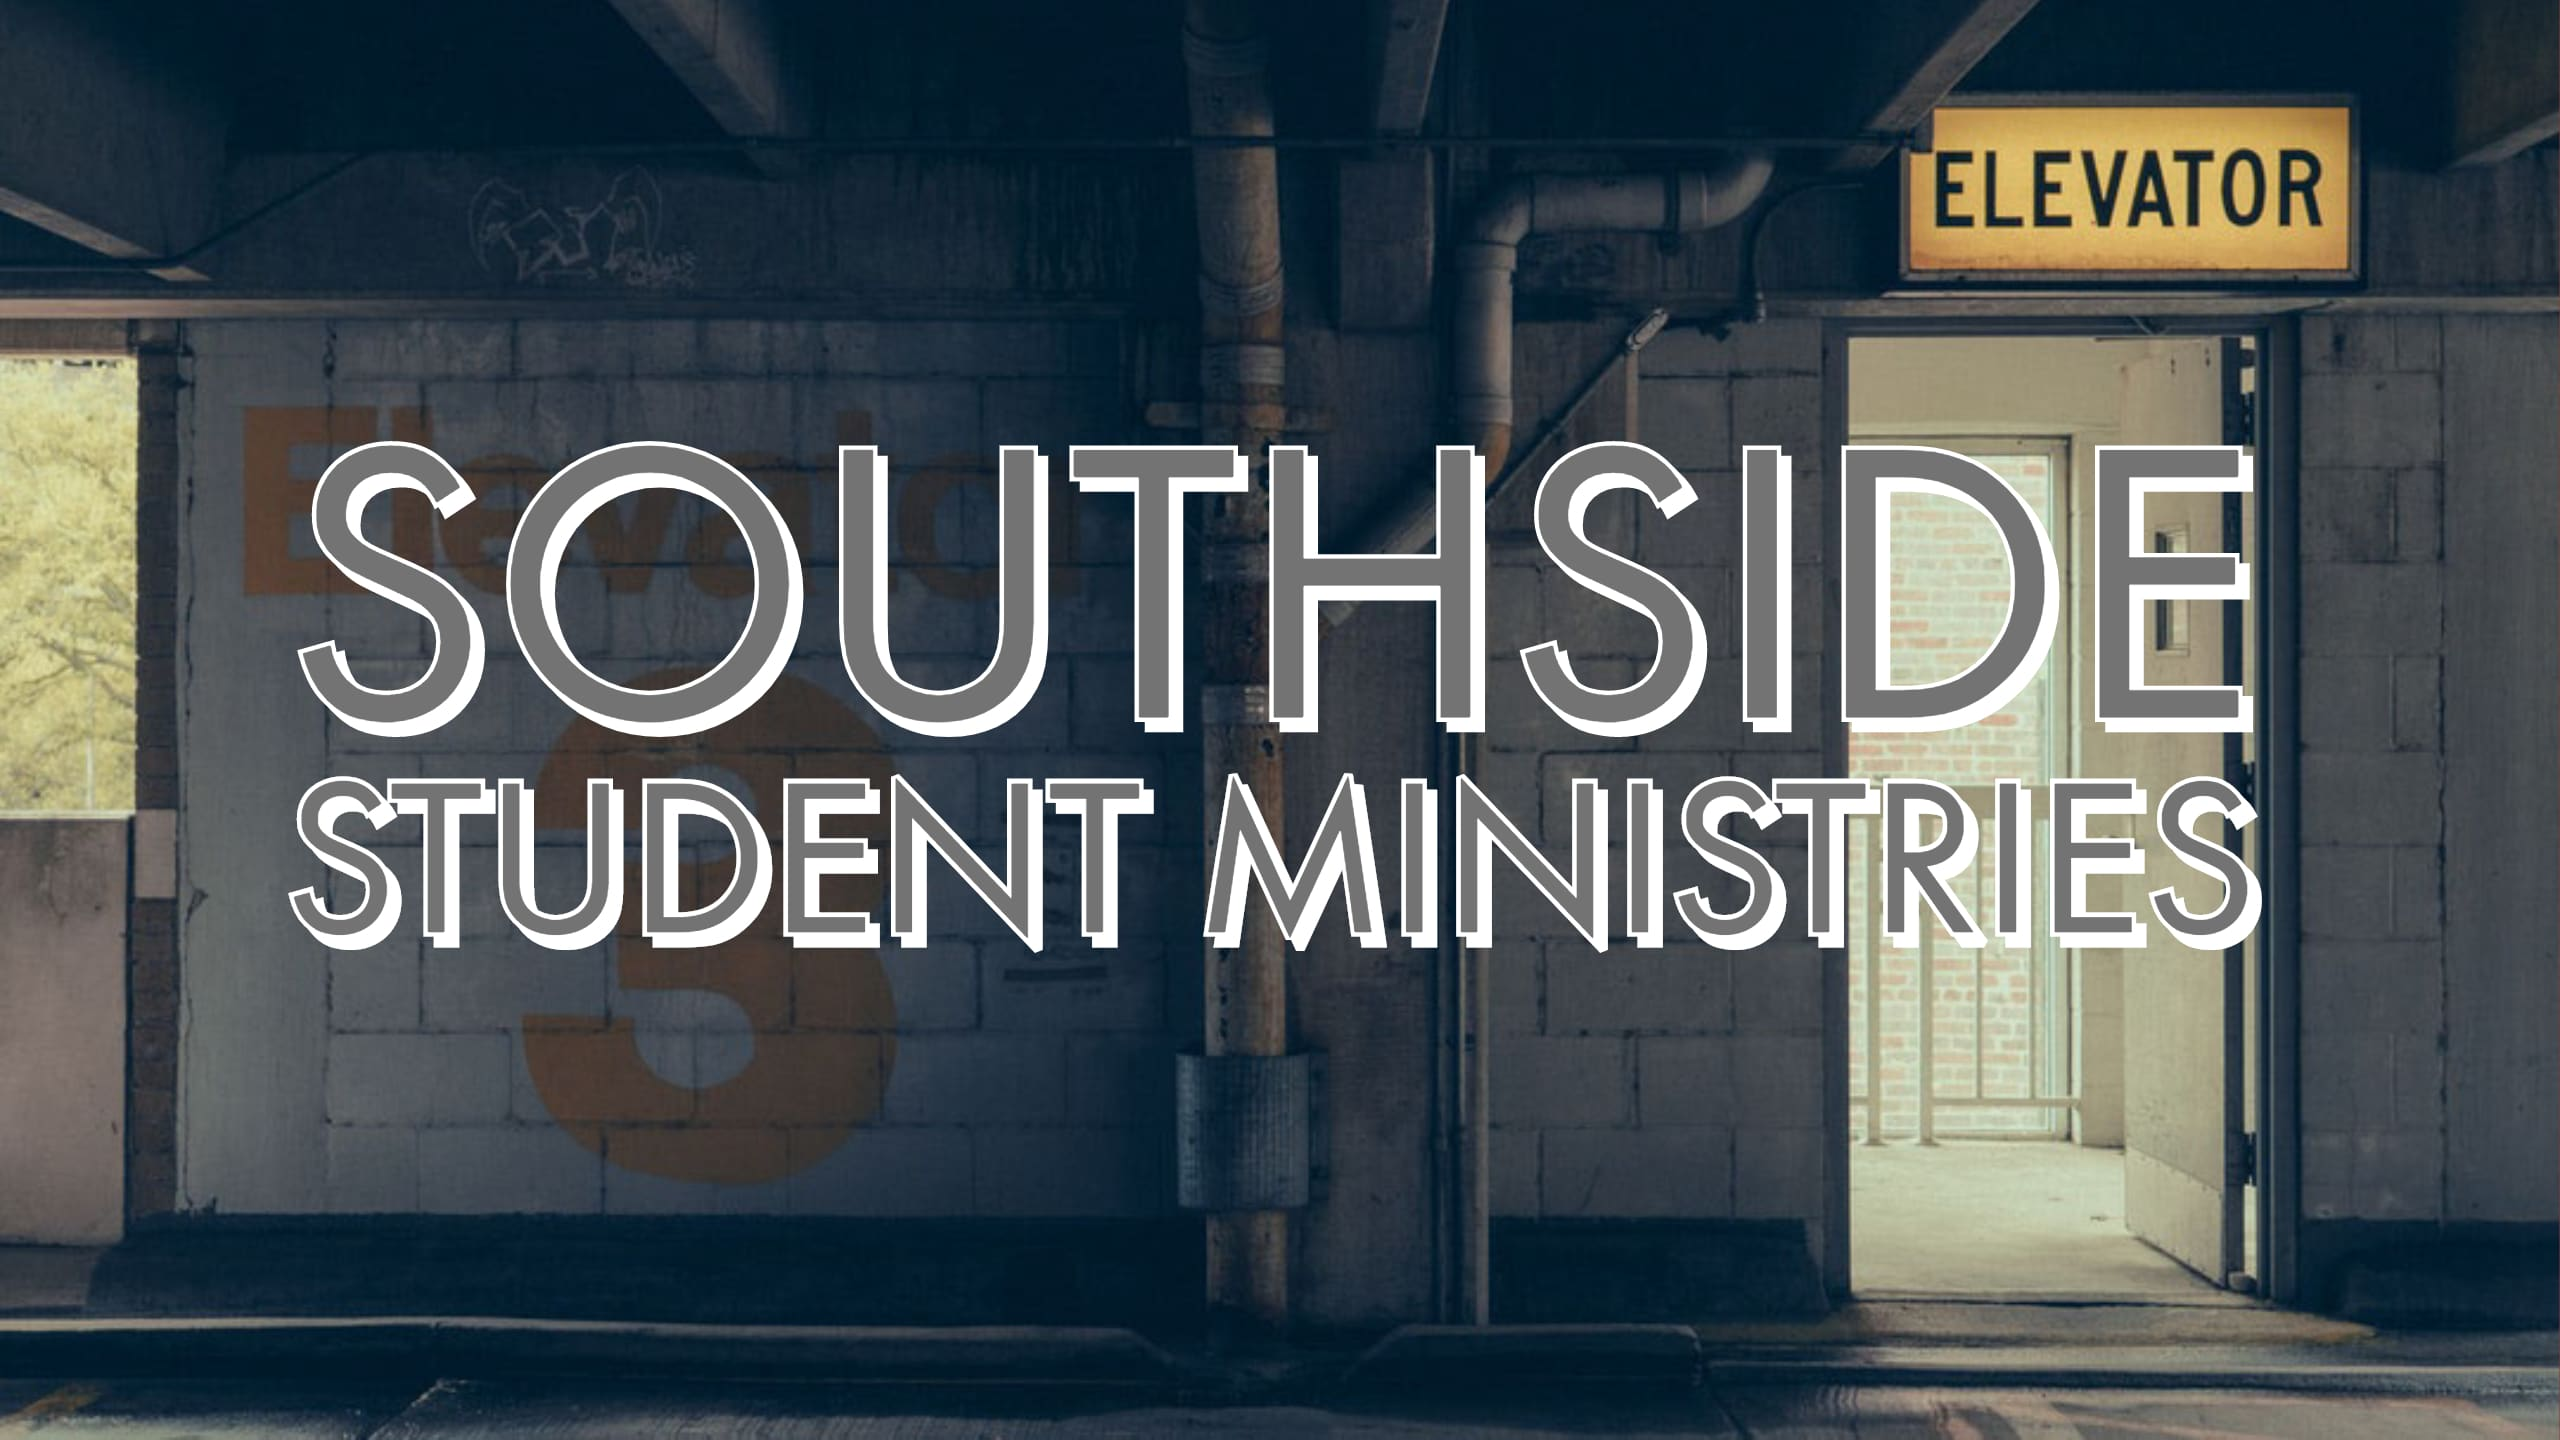 Southside Student Ministries